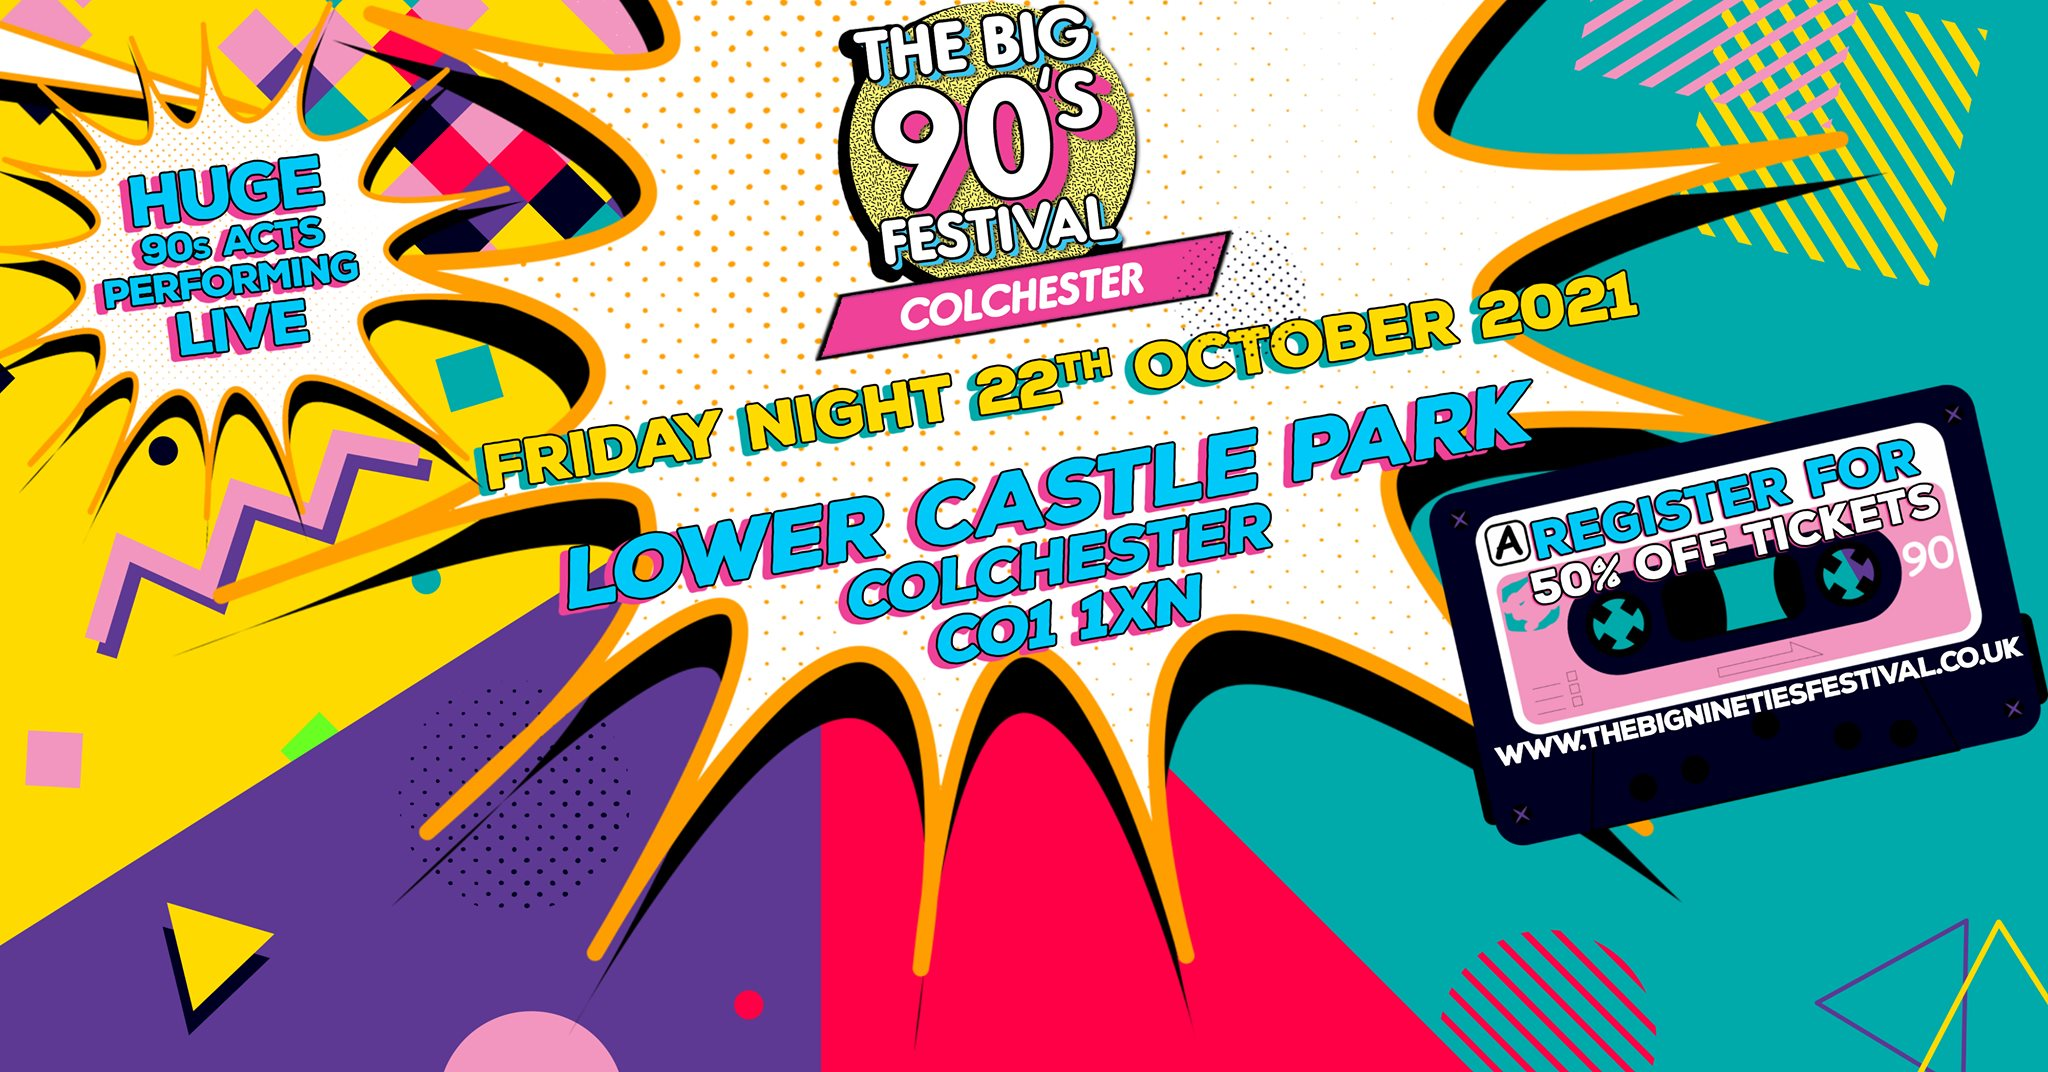 The Big Nineties Festival – Colchester 2021